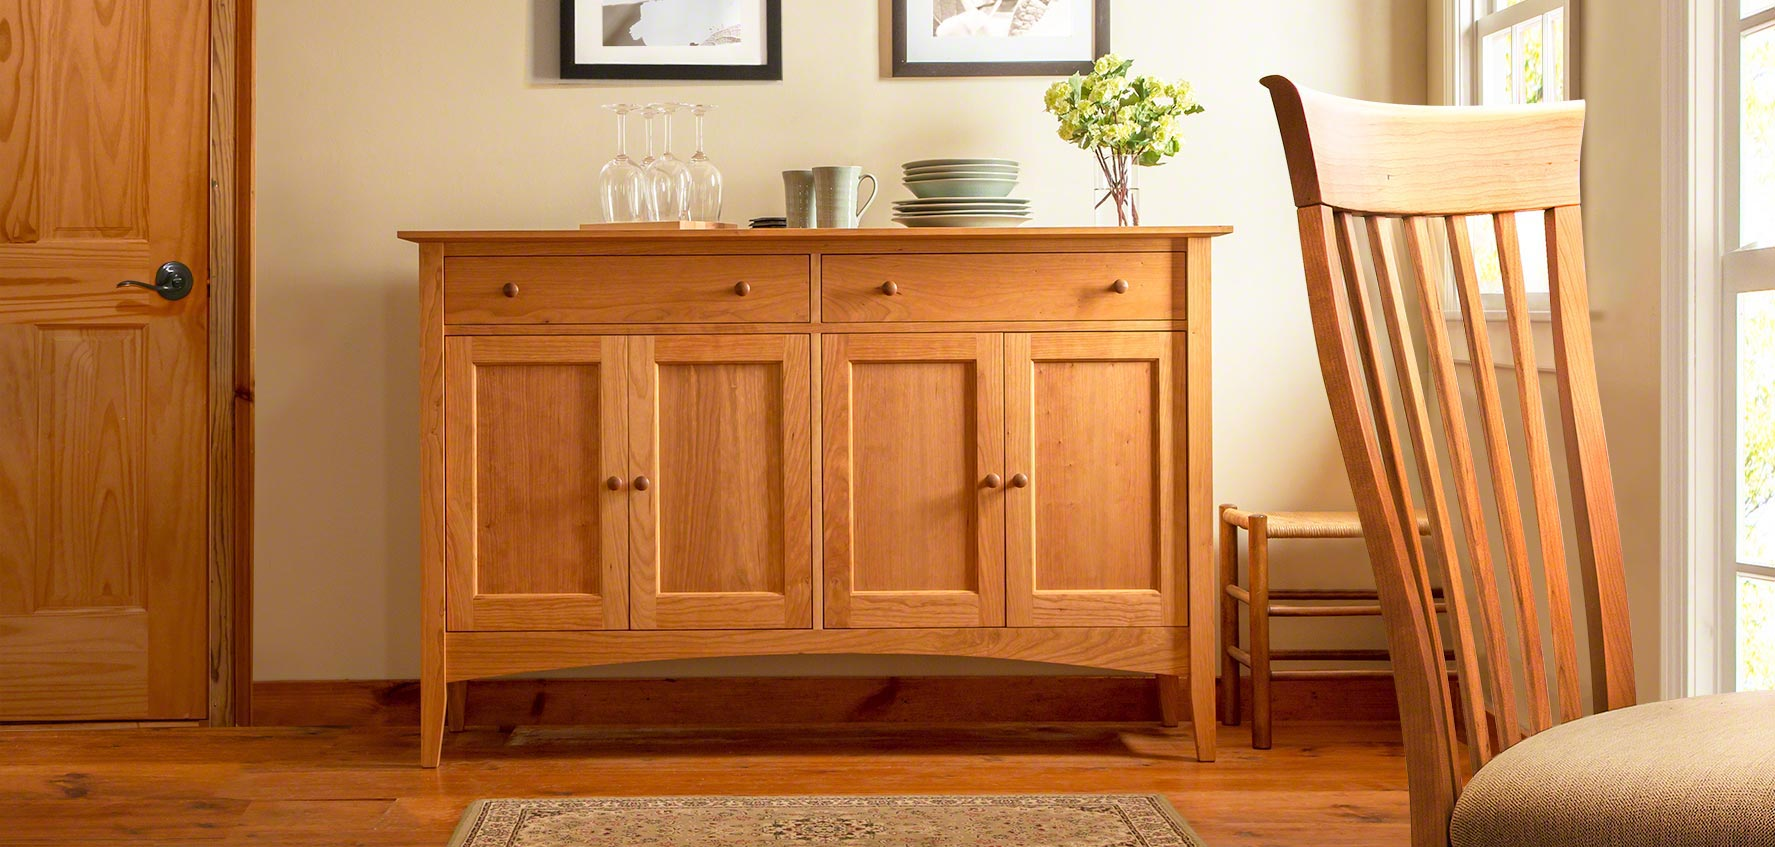 Cherry Wood Furniture Vermont Woods Studios Fine Furniture And Home Decor